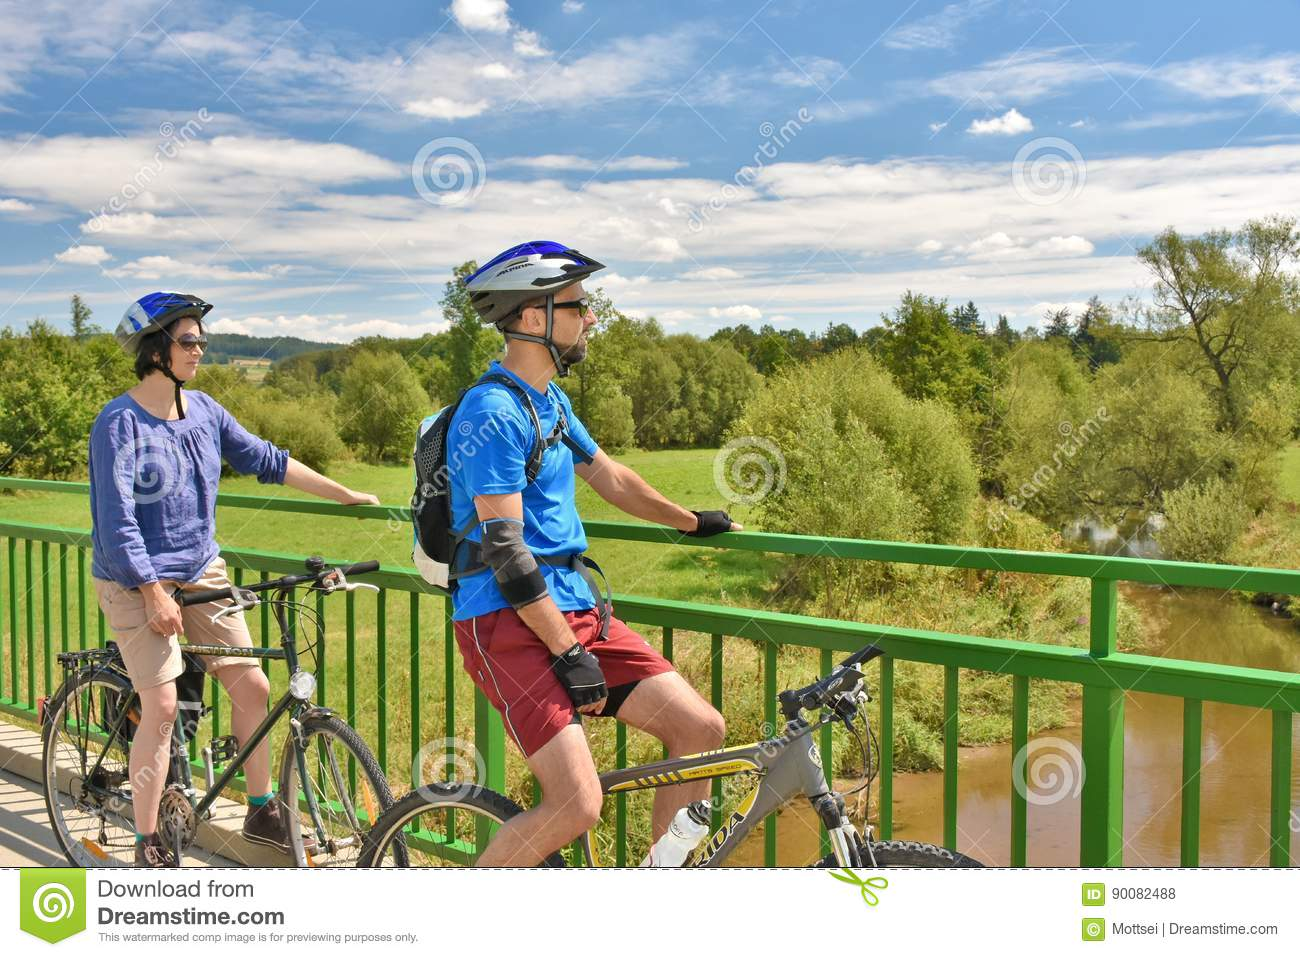 Adult couple on bikes stopping on a bridge